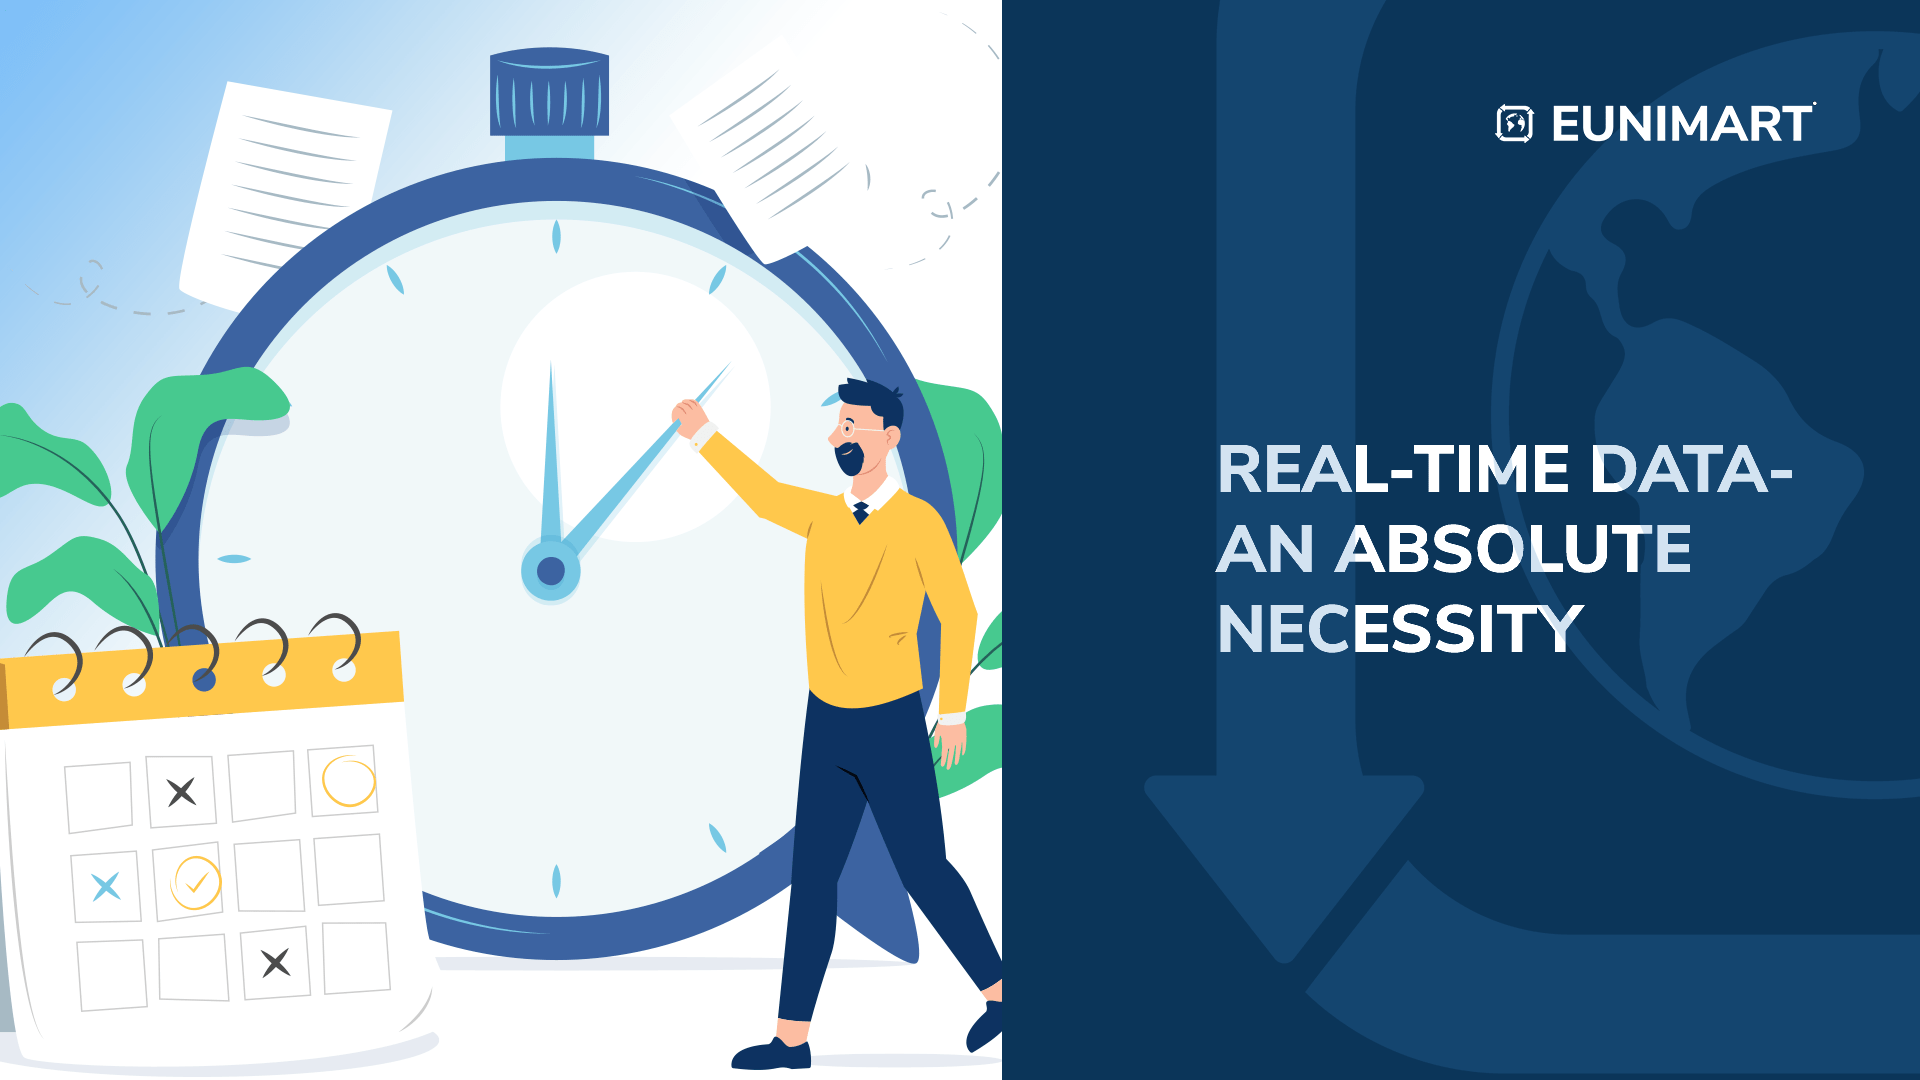 Real-time Data- an absolute necessity